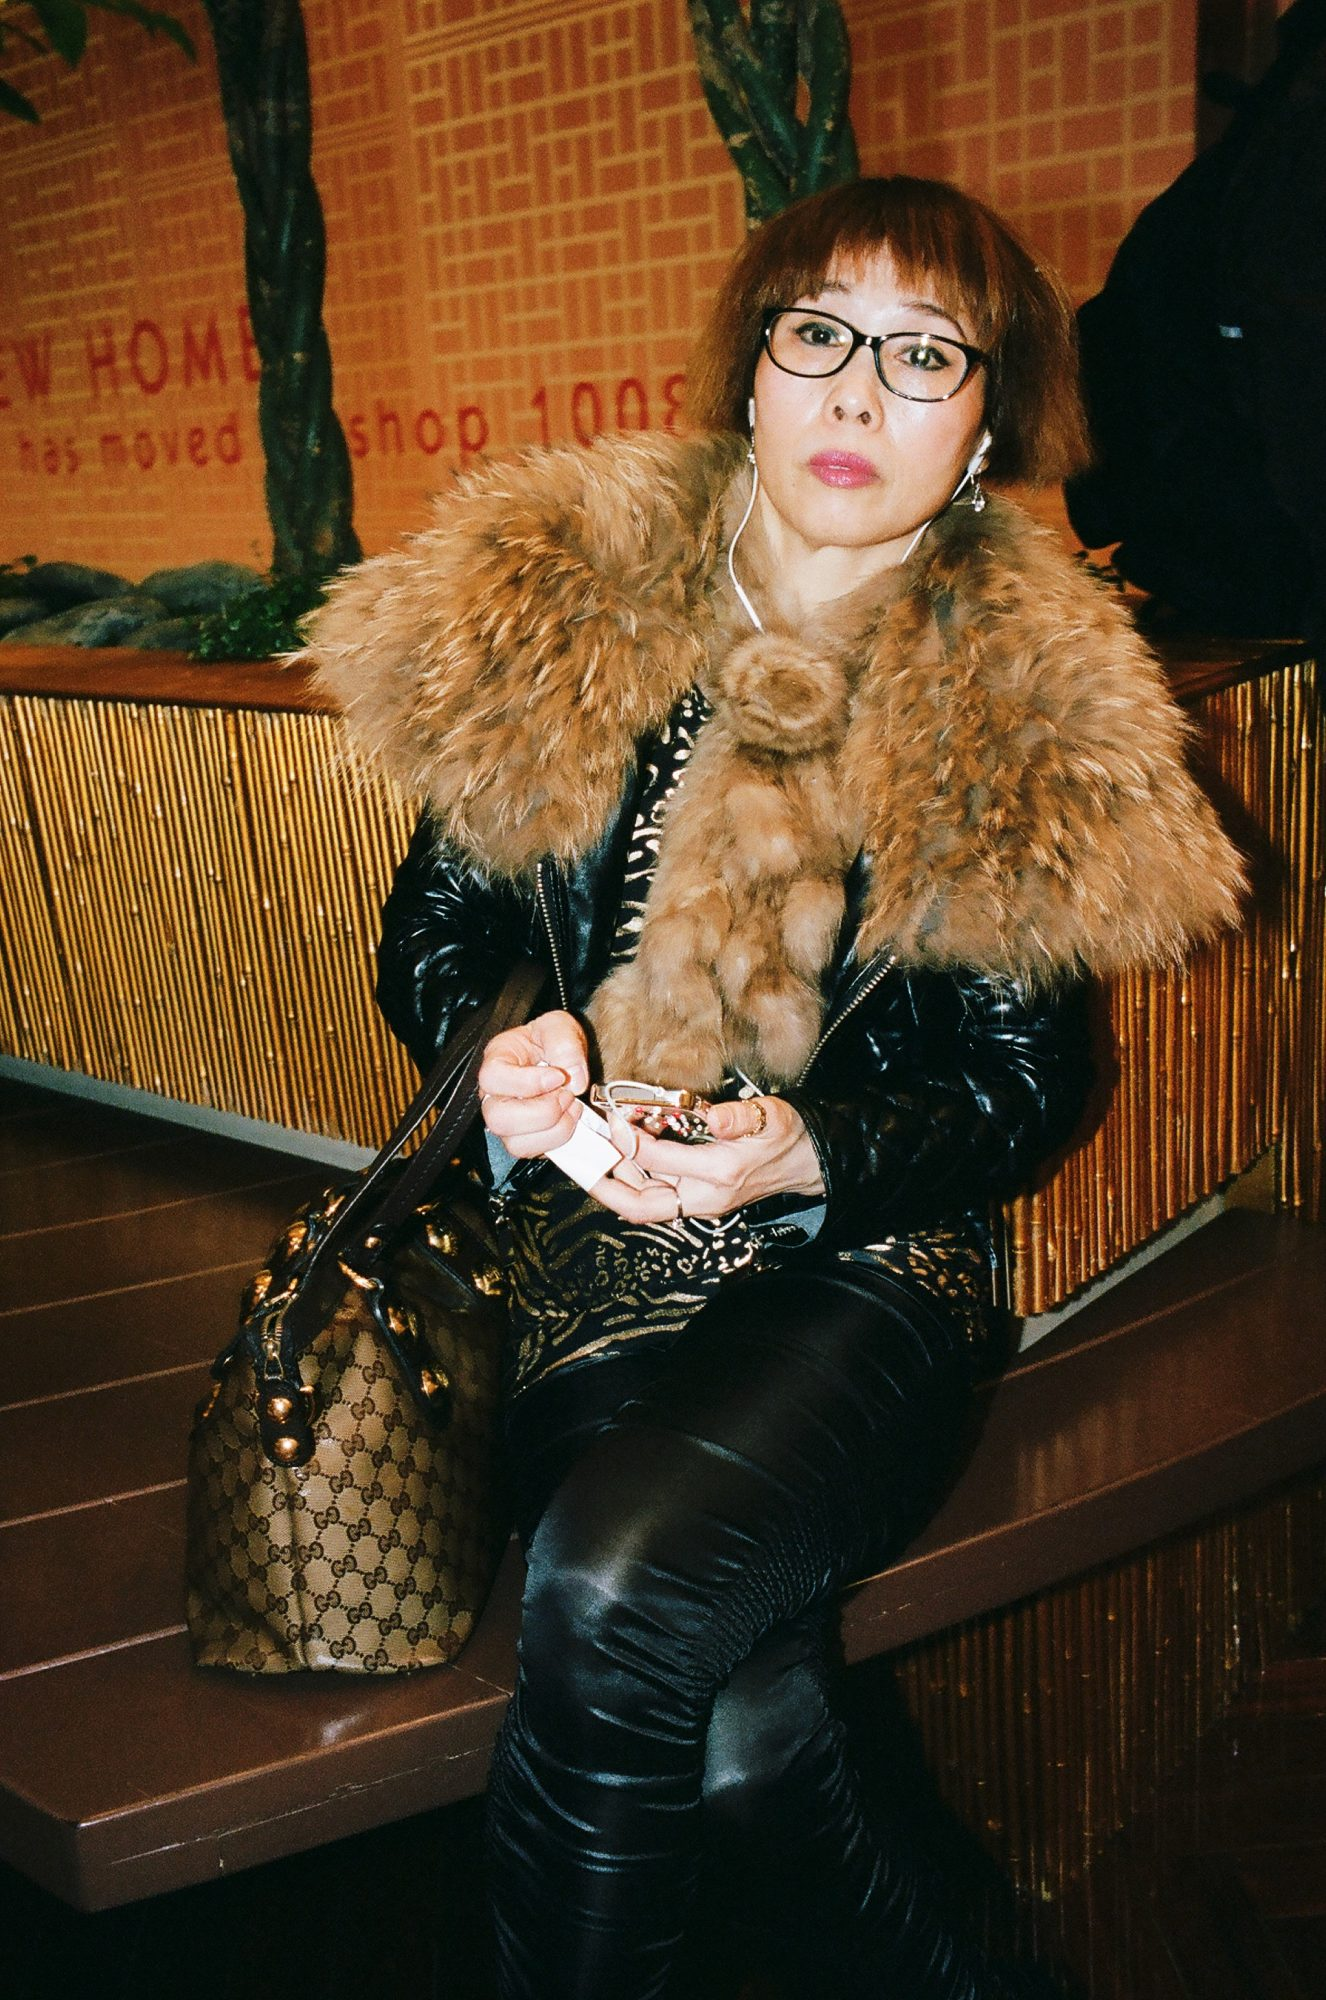 Photograph of a woman in fur I shot inside a Hong Kong Mall, 2013.